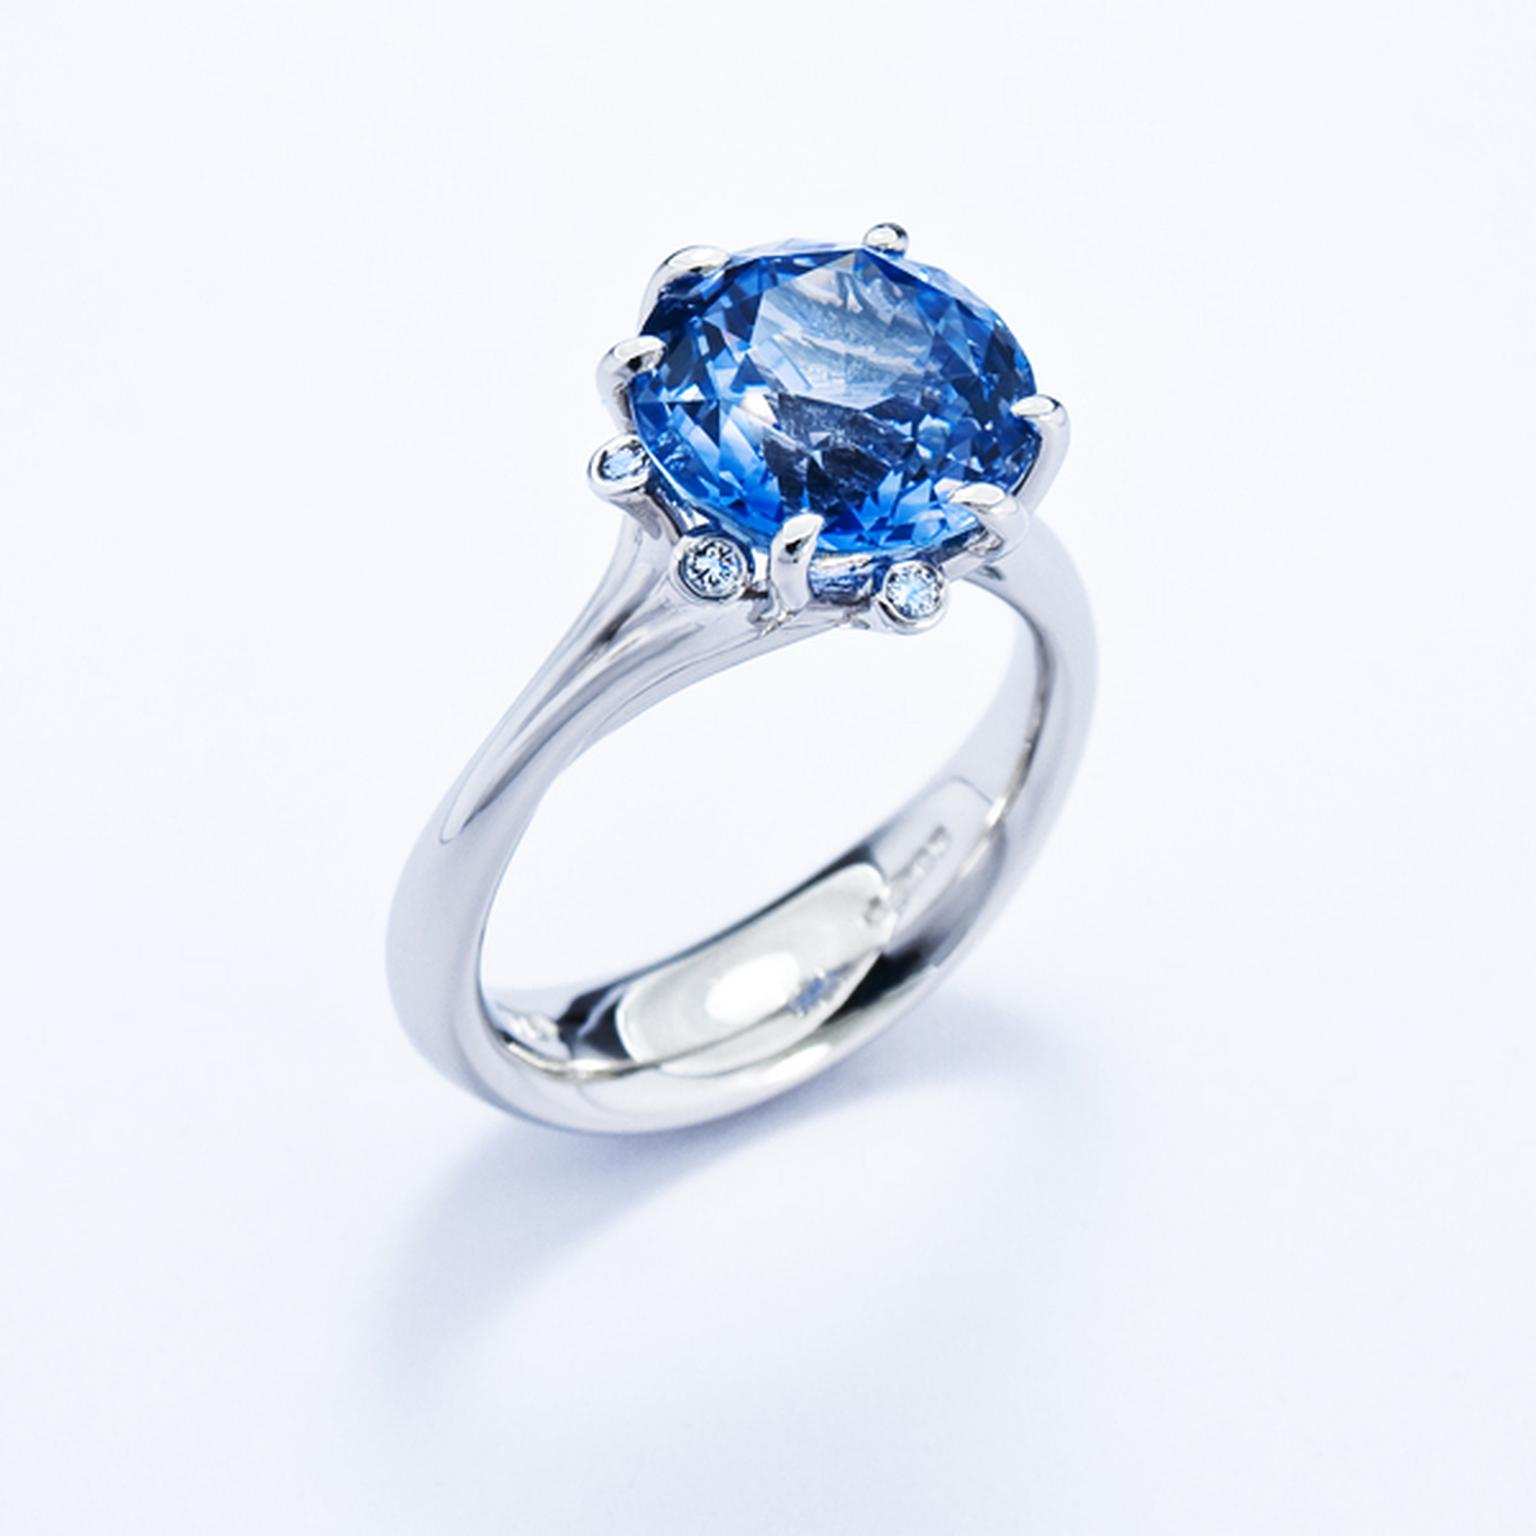 Jon Dibben Meadow sapphire engagement ring in platinum.